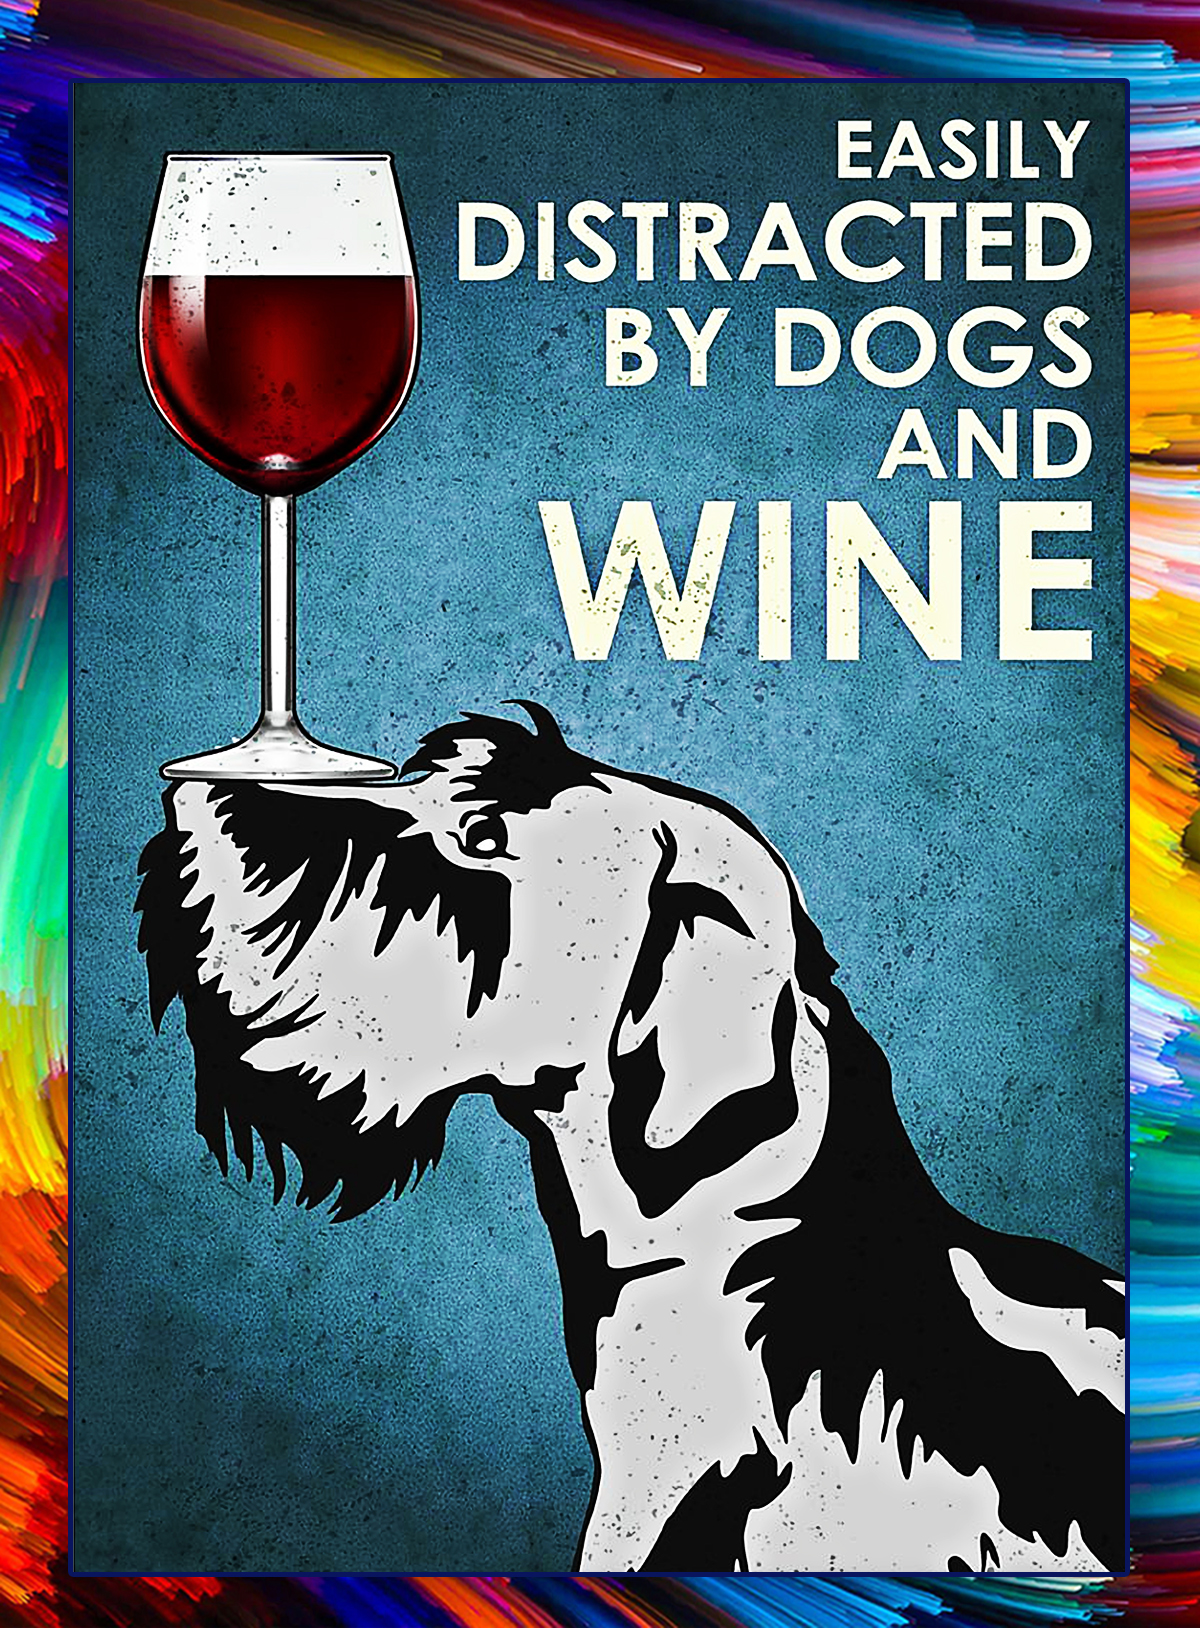 Miniature schnauzer Easily distracted by dogs and wine poster